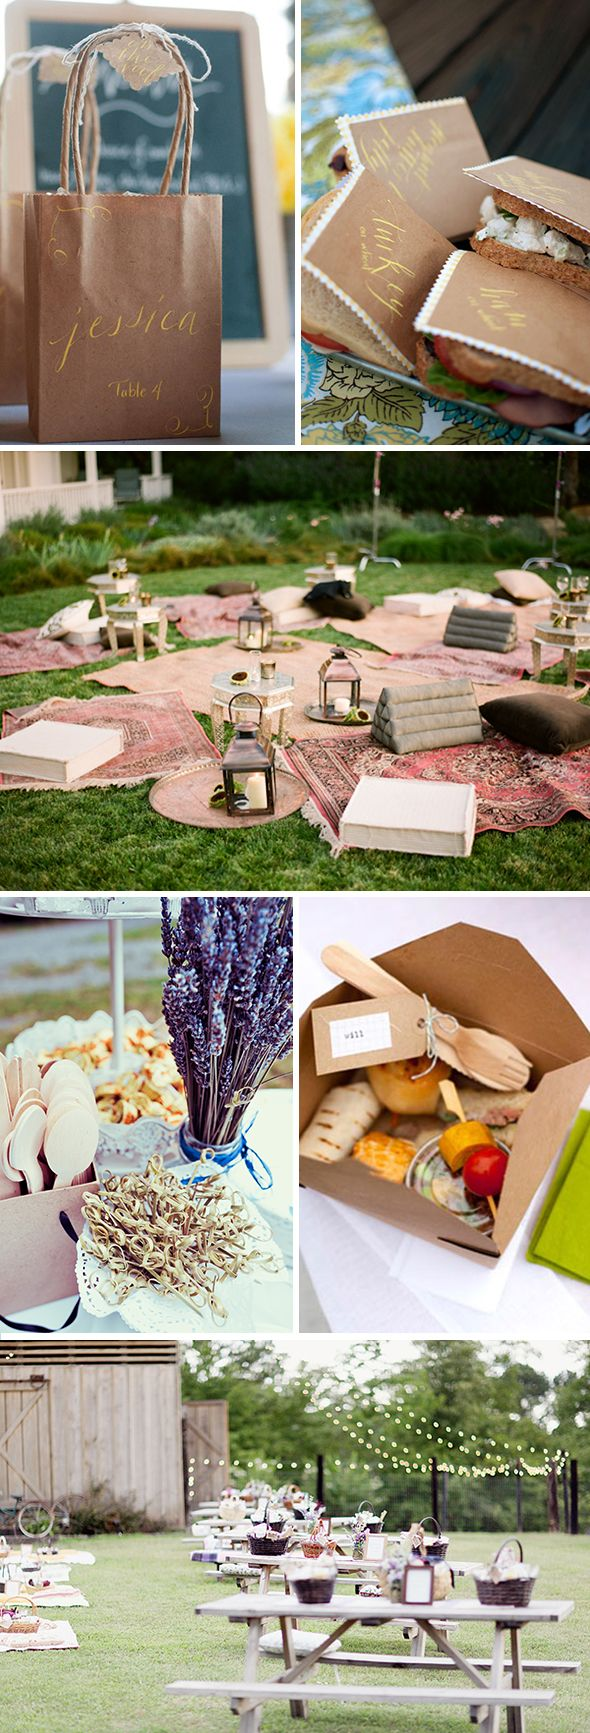 picnic wedding (The Bridal Bar)                                                                                                                                                                                 More